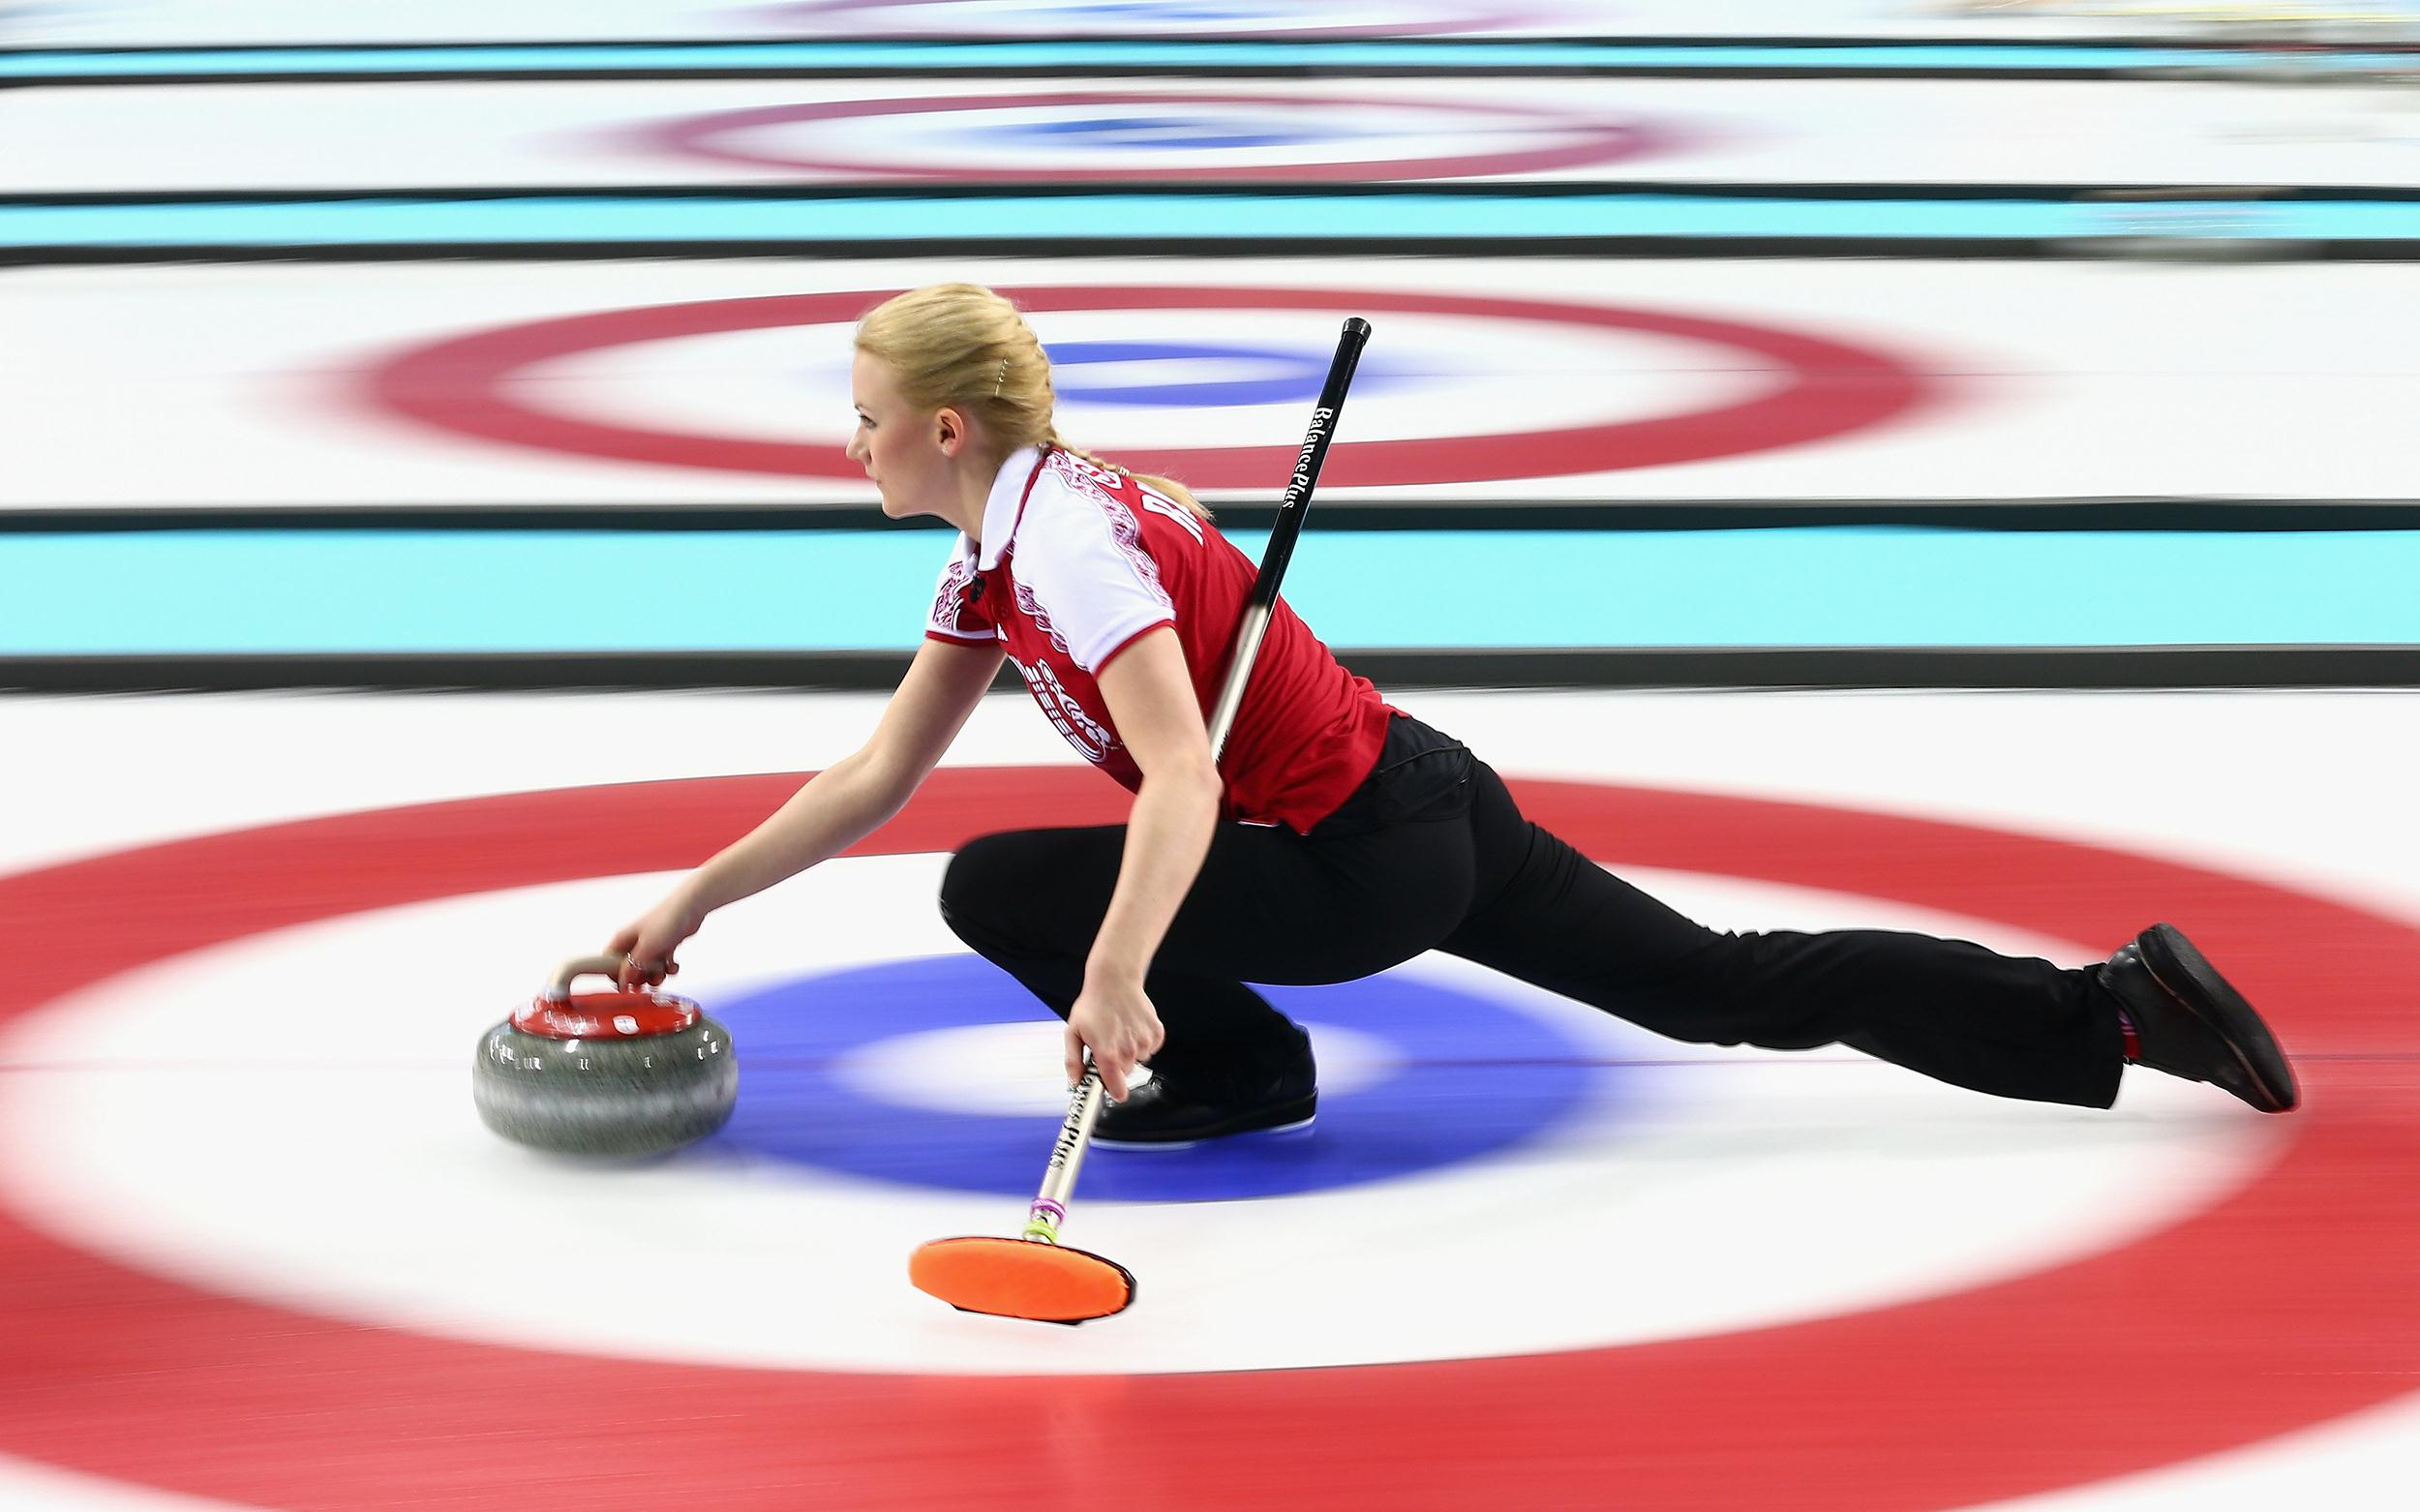 Use of High-Tech Brooms Divides Low-Tech Sport of Curling ...